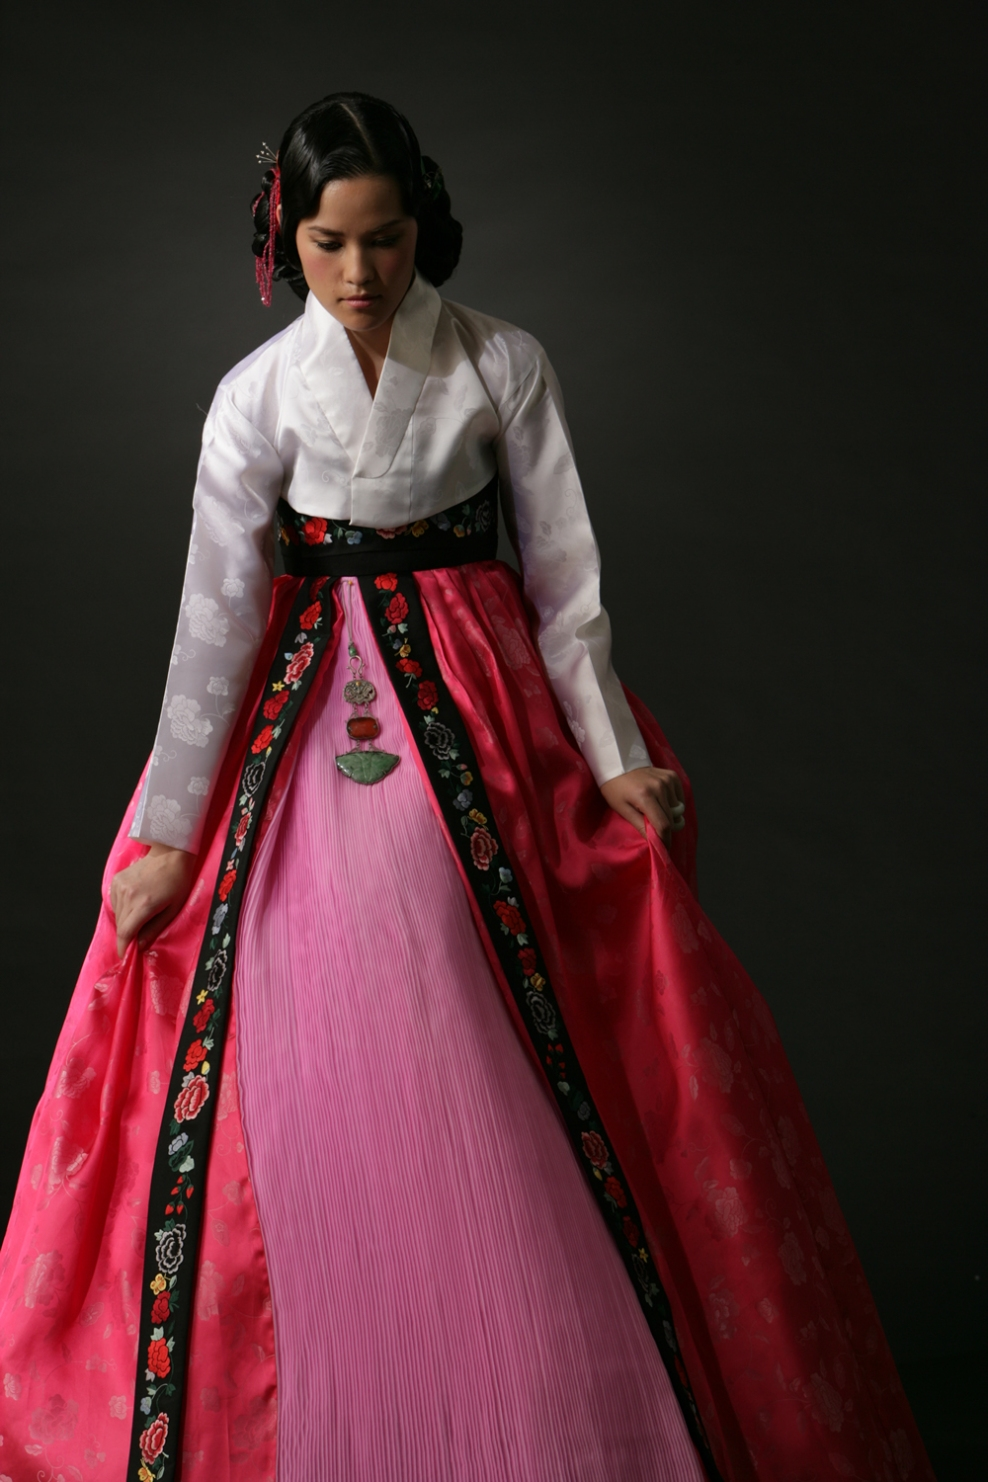 galleries_hanbok_1390